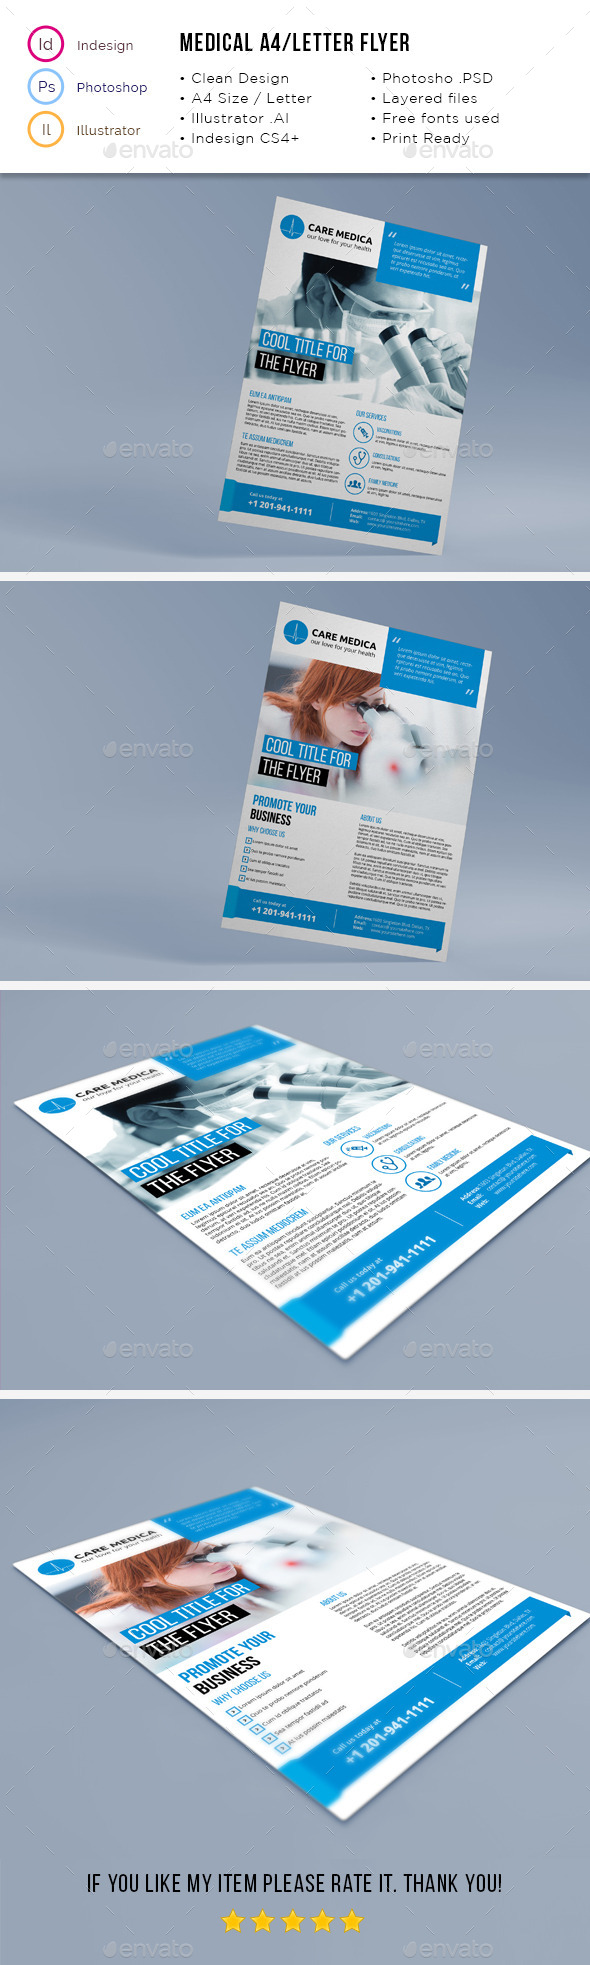 GraphicRiver Medical A4 Letter Flyer 11816963